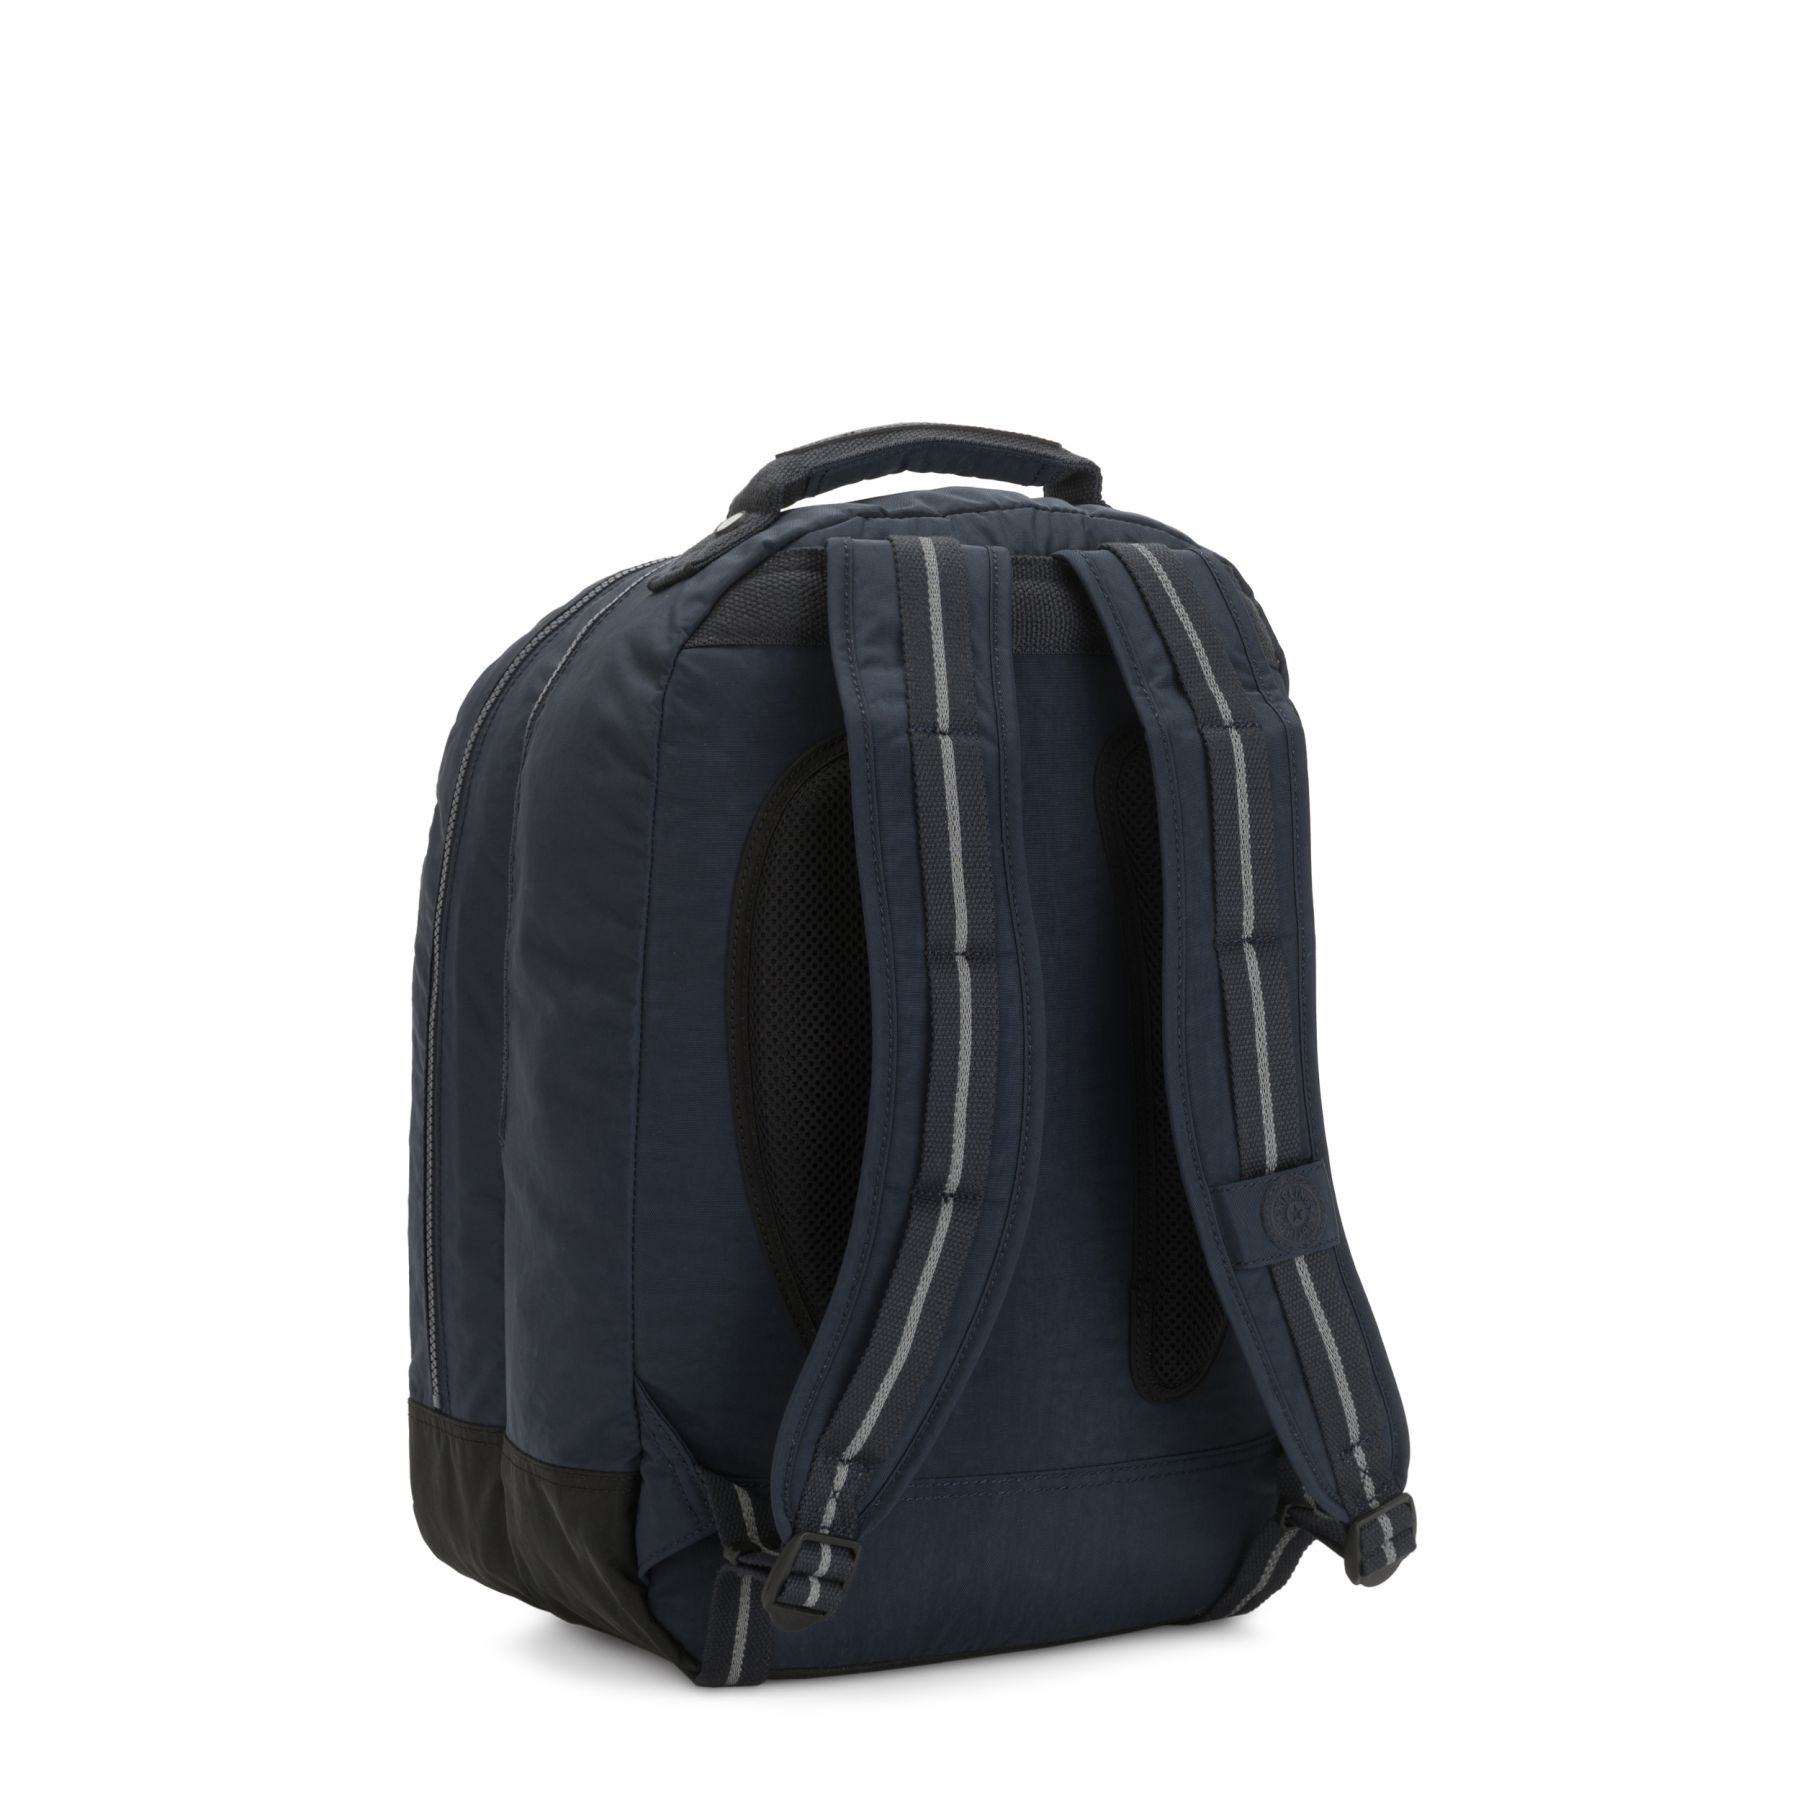 CLASS ROOM Latest Backpacks by Kipling - Back view